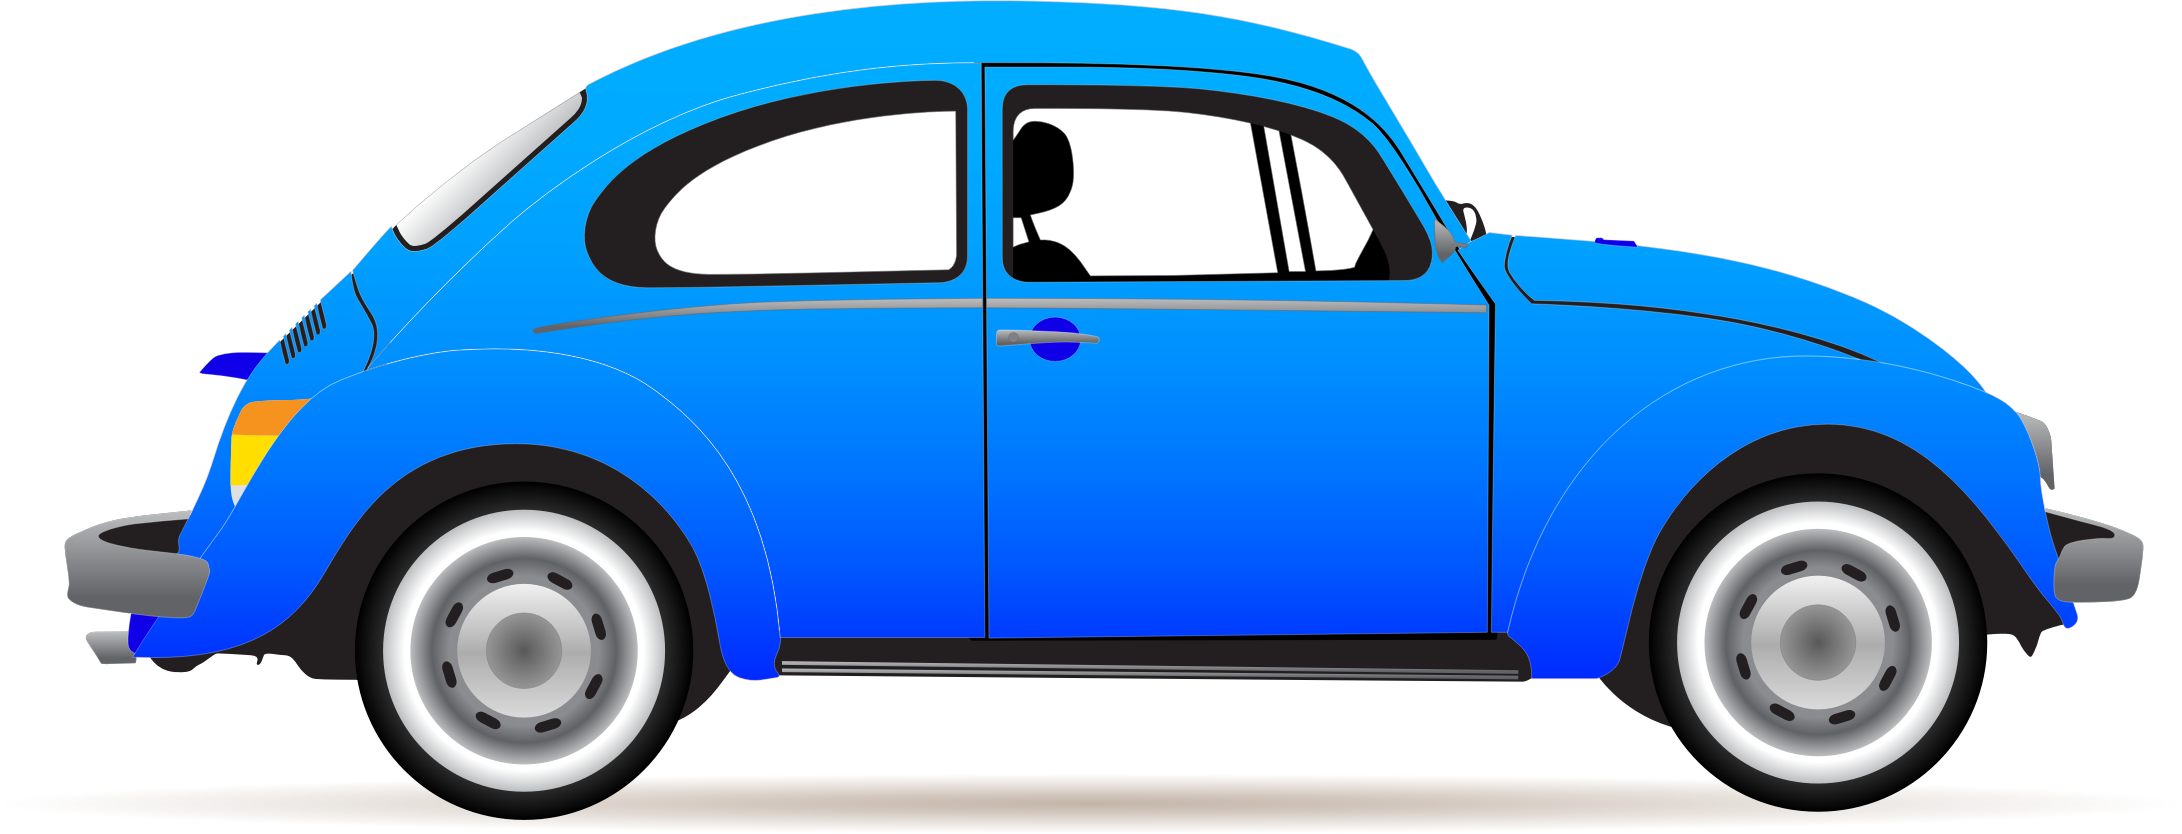 Car clipart banner black and white library Blue car clipart - ClipartFest banner black and white library